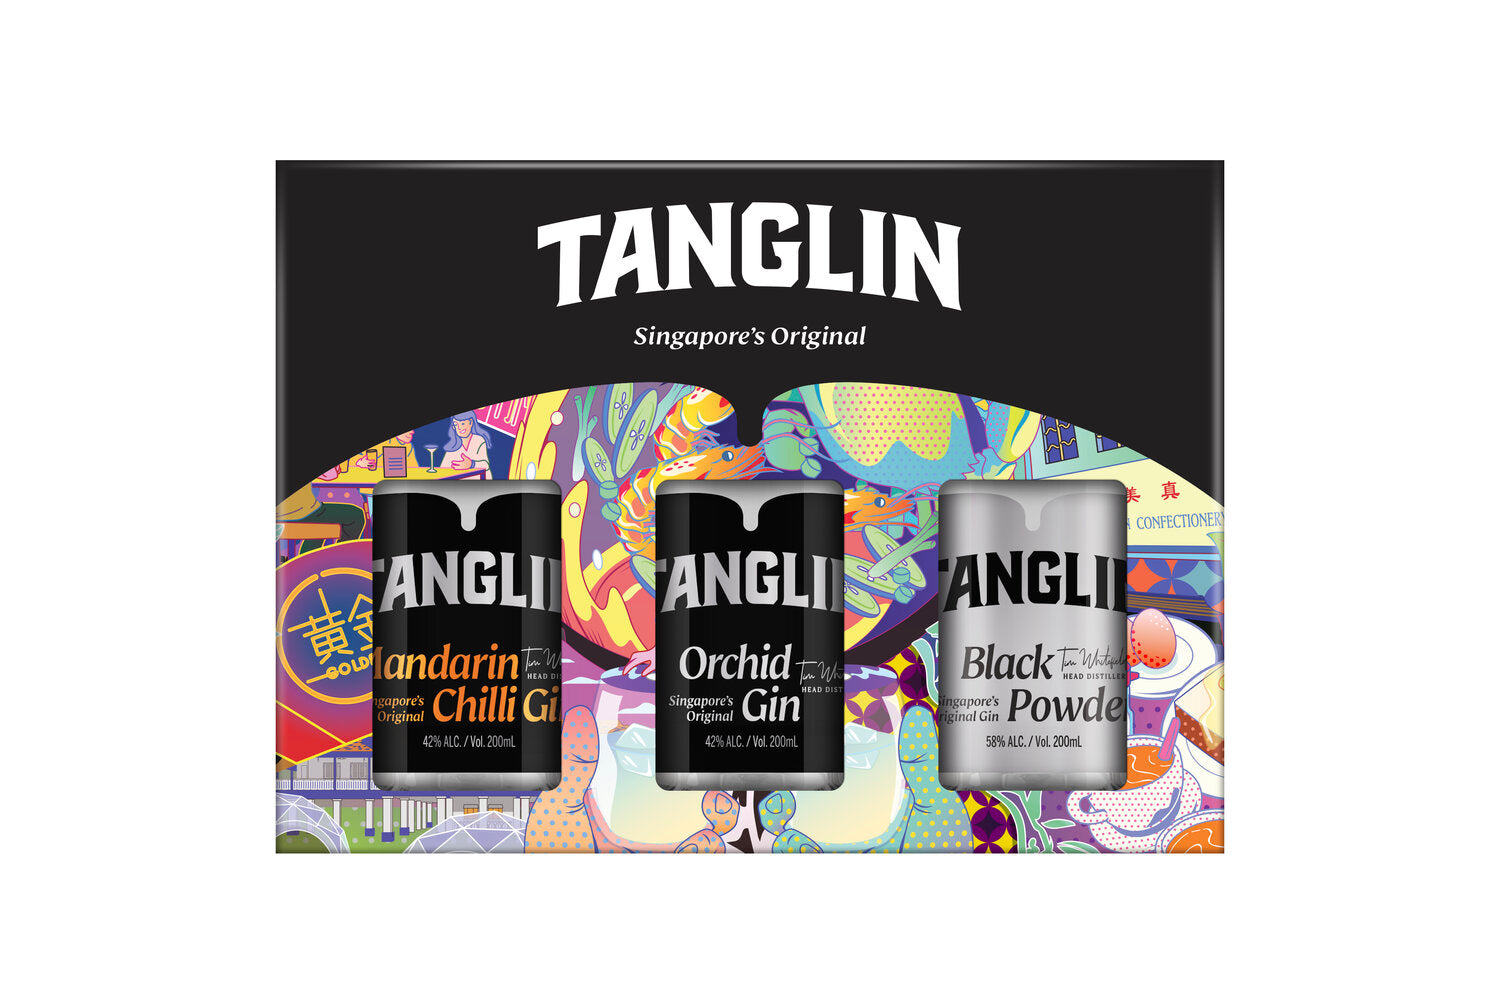 Tanglin Gin Variety Pack